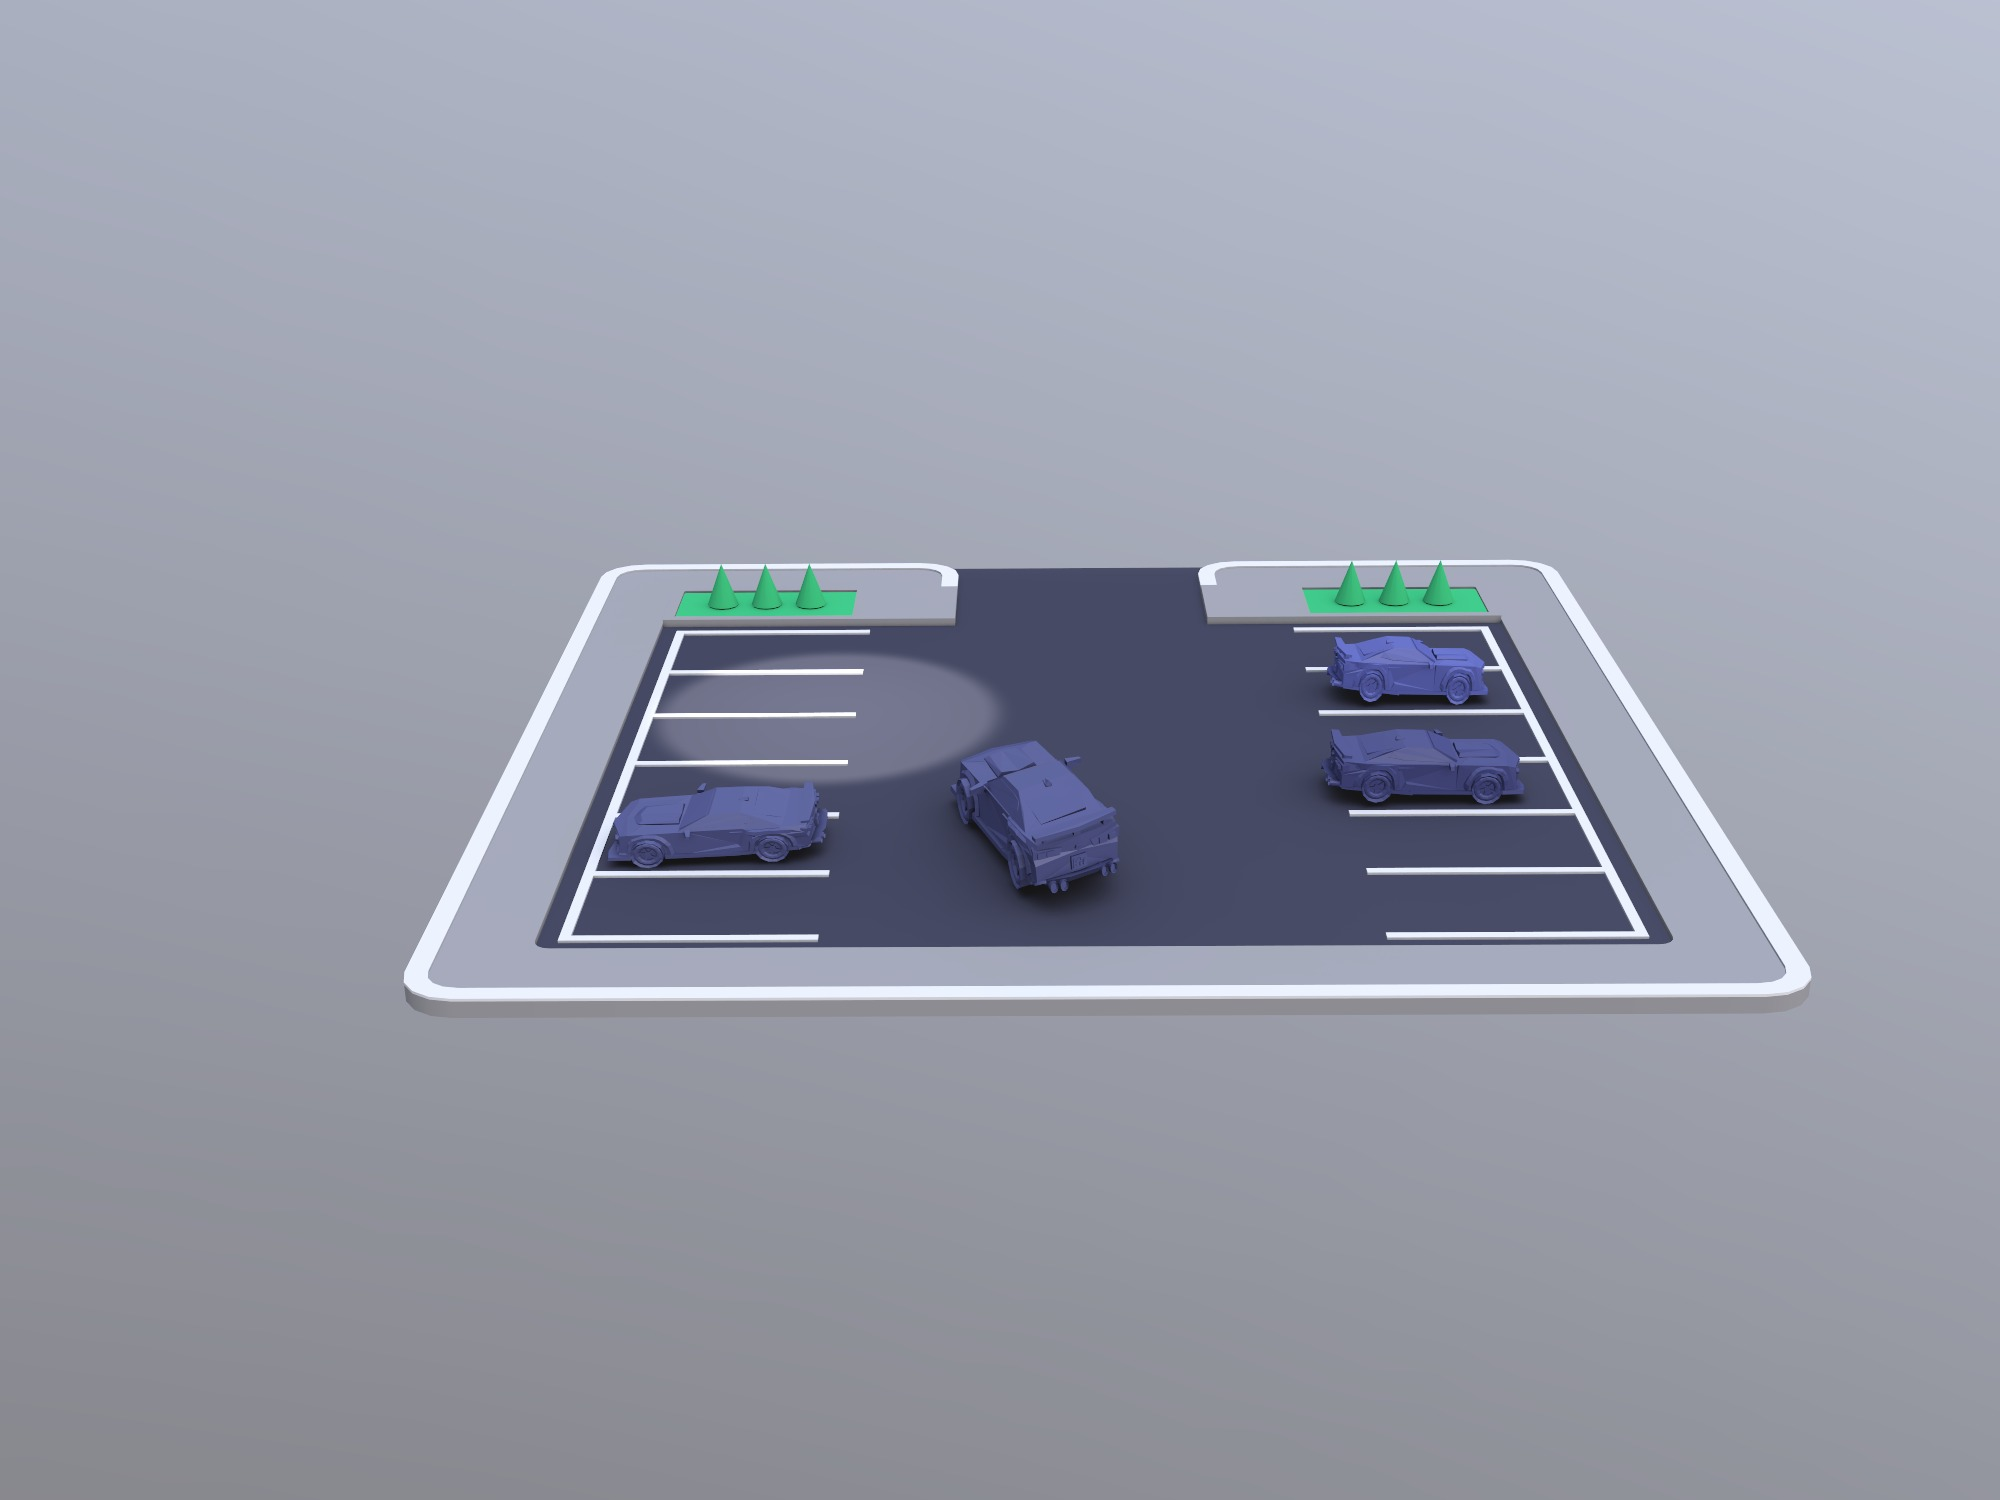 Parking - 3D design by Akshat Sharma on Dec 12, 2018